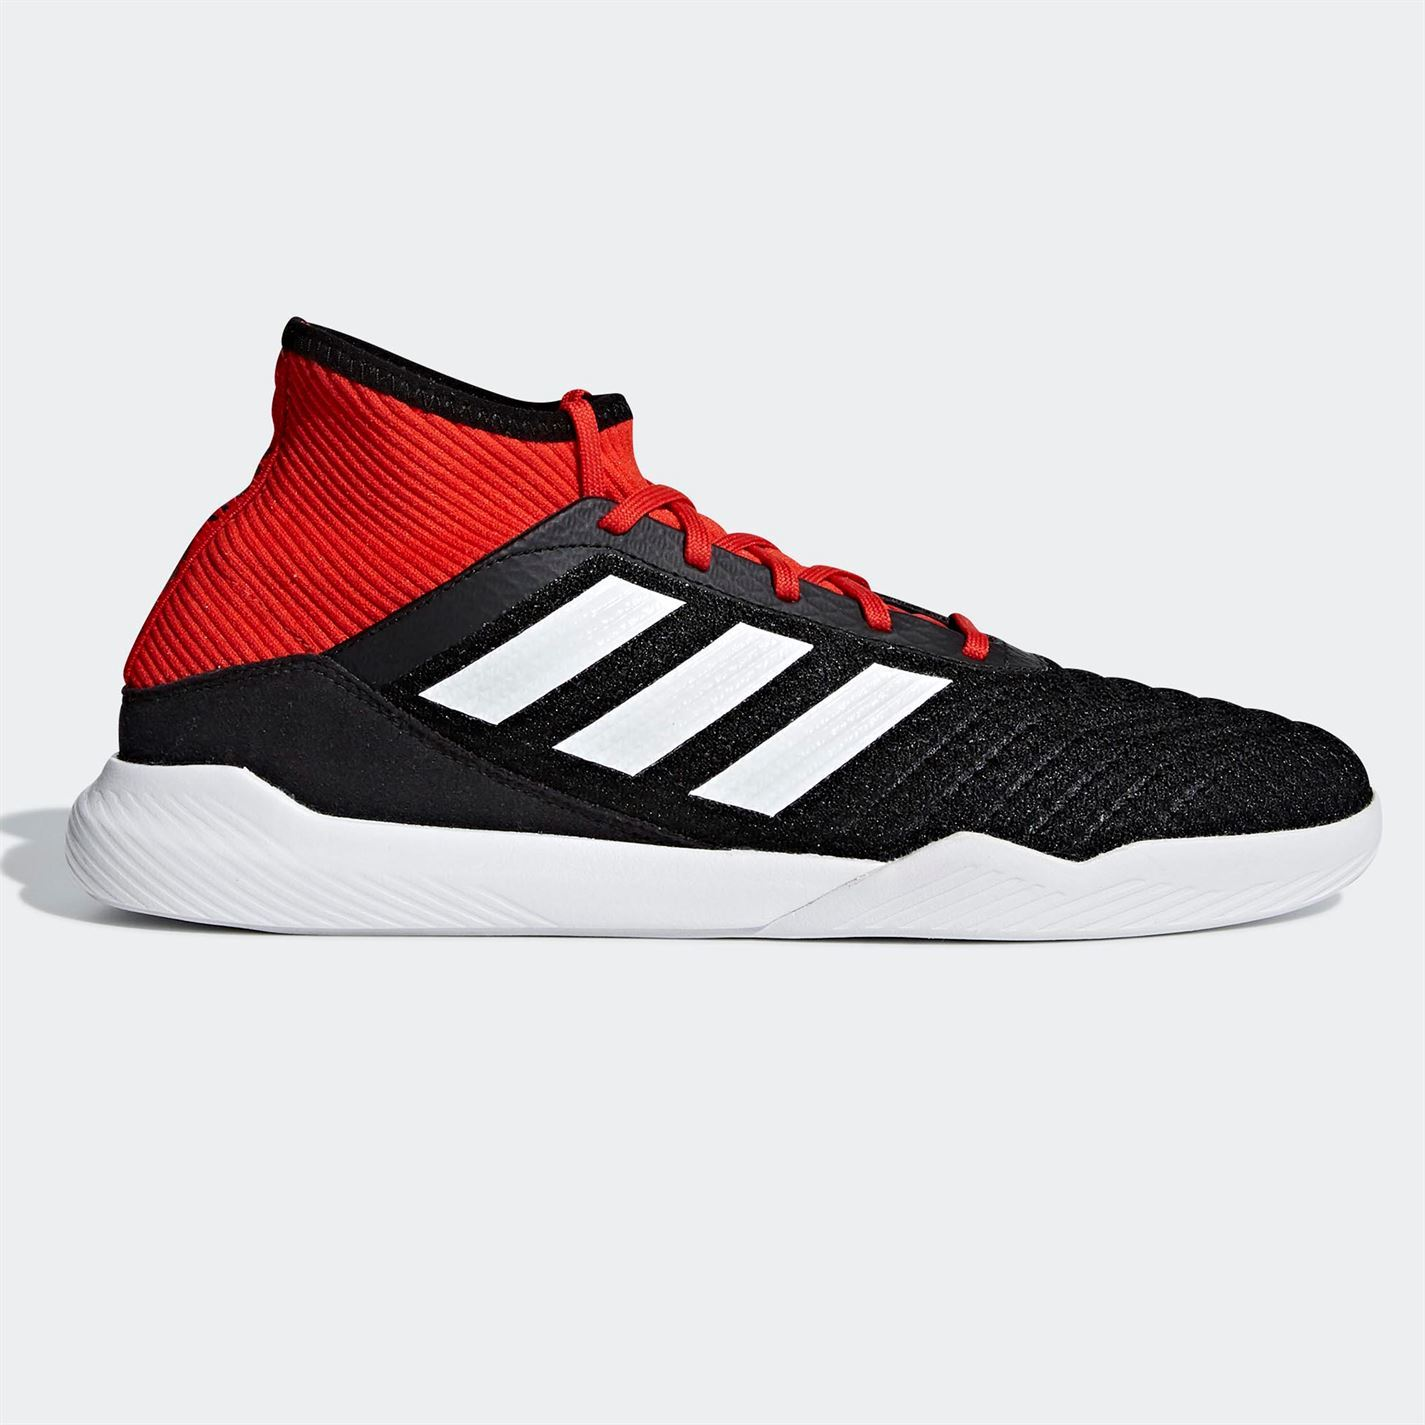 huge discount 4fd77 4e5f4 adidas-Predator-Tango-18-3-Indoor-Football-Trainers-